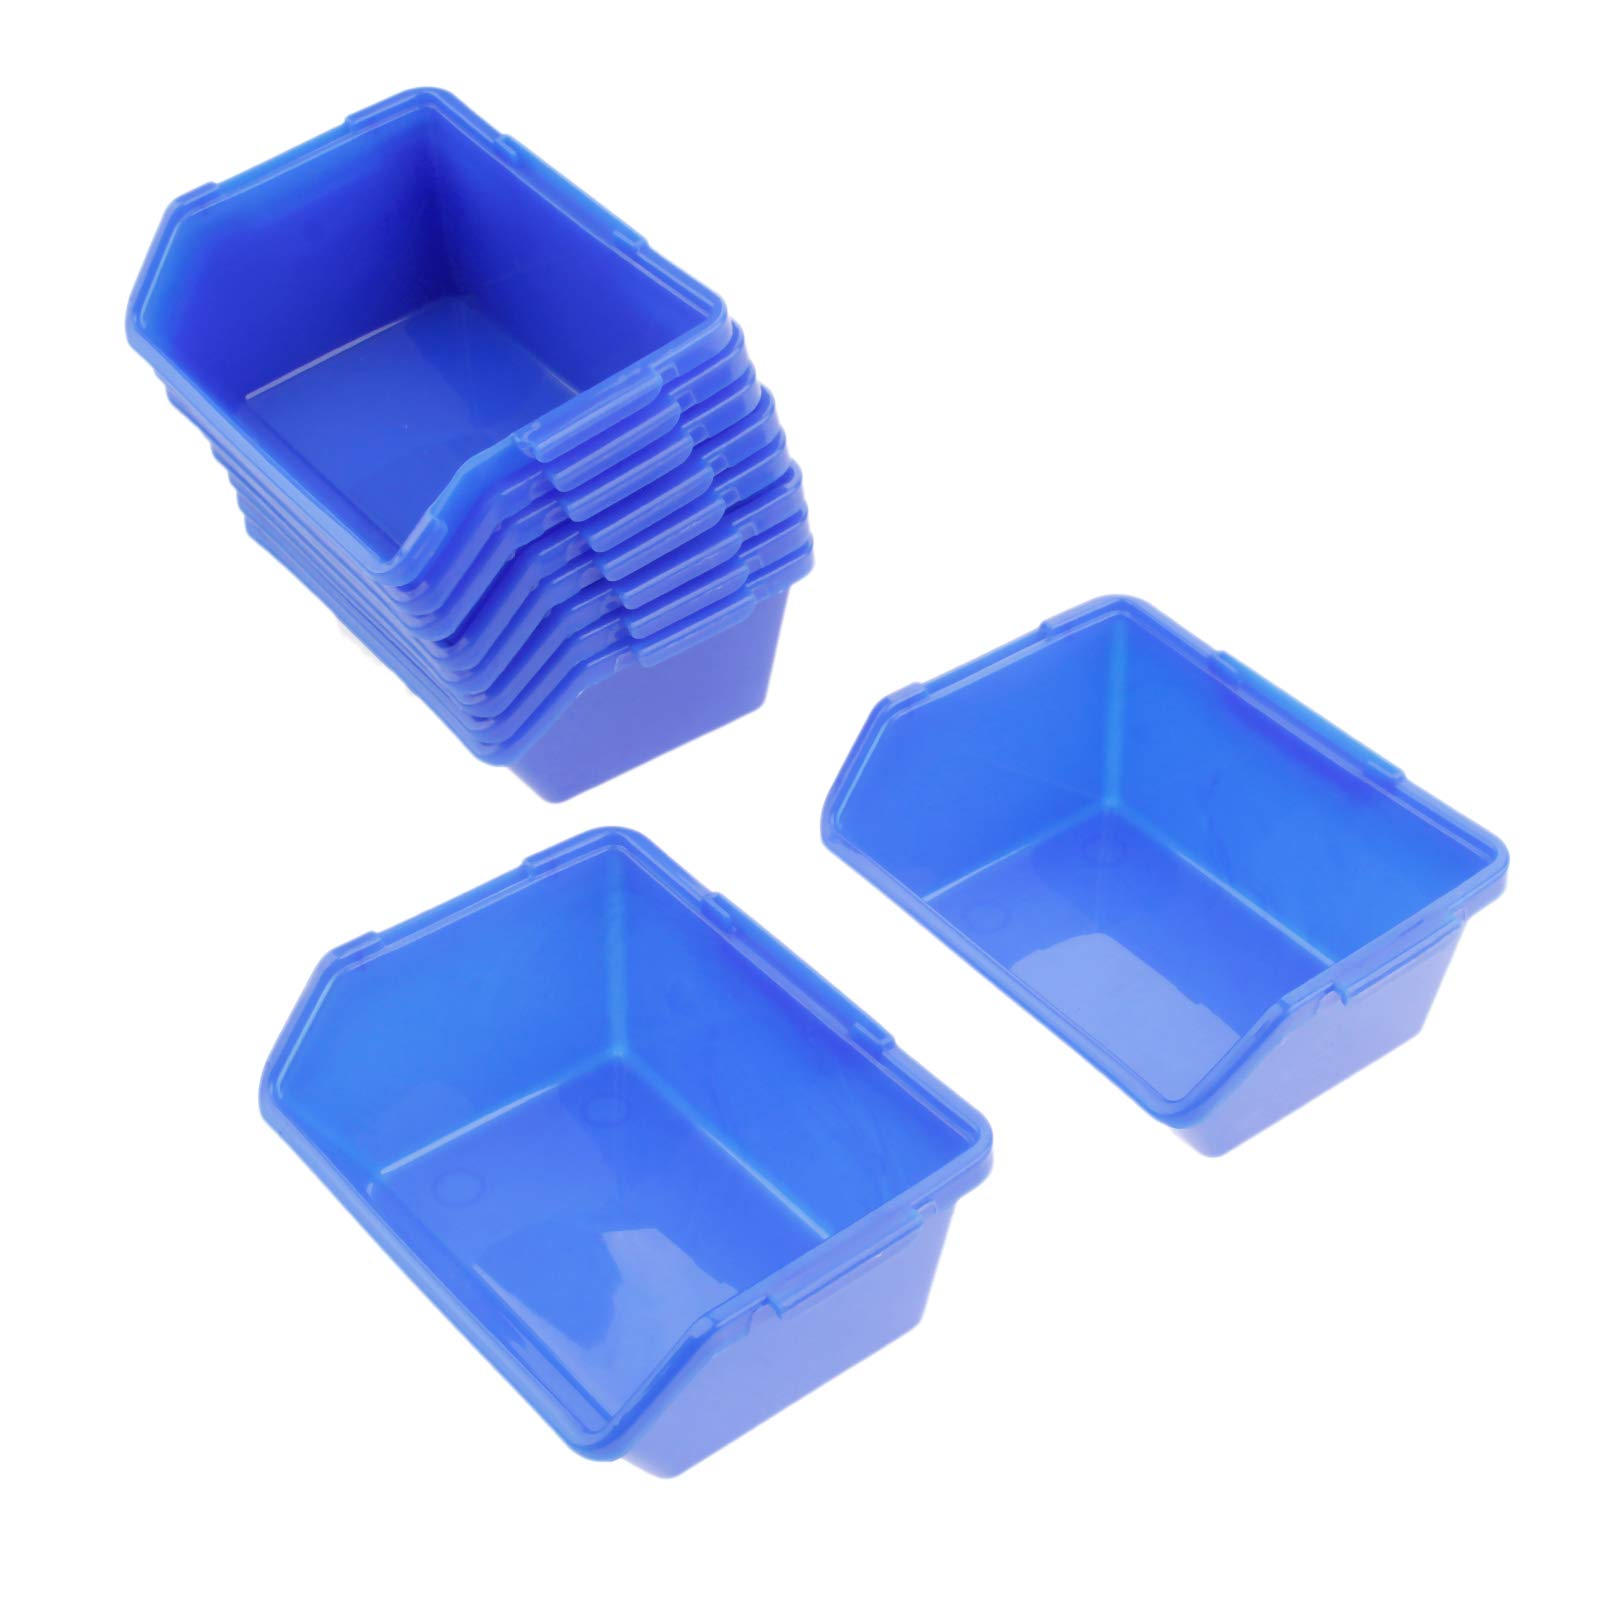 10 Pcs Blue Bin Storage Rack Shelving Garage Storage Rack Tool Organiser Box Workshop Thickened combination Components box by Hicello (Image #2)